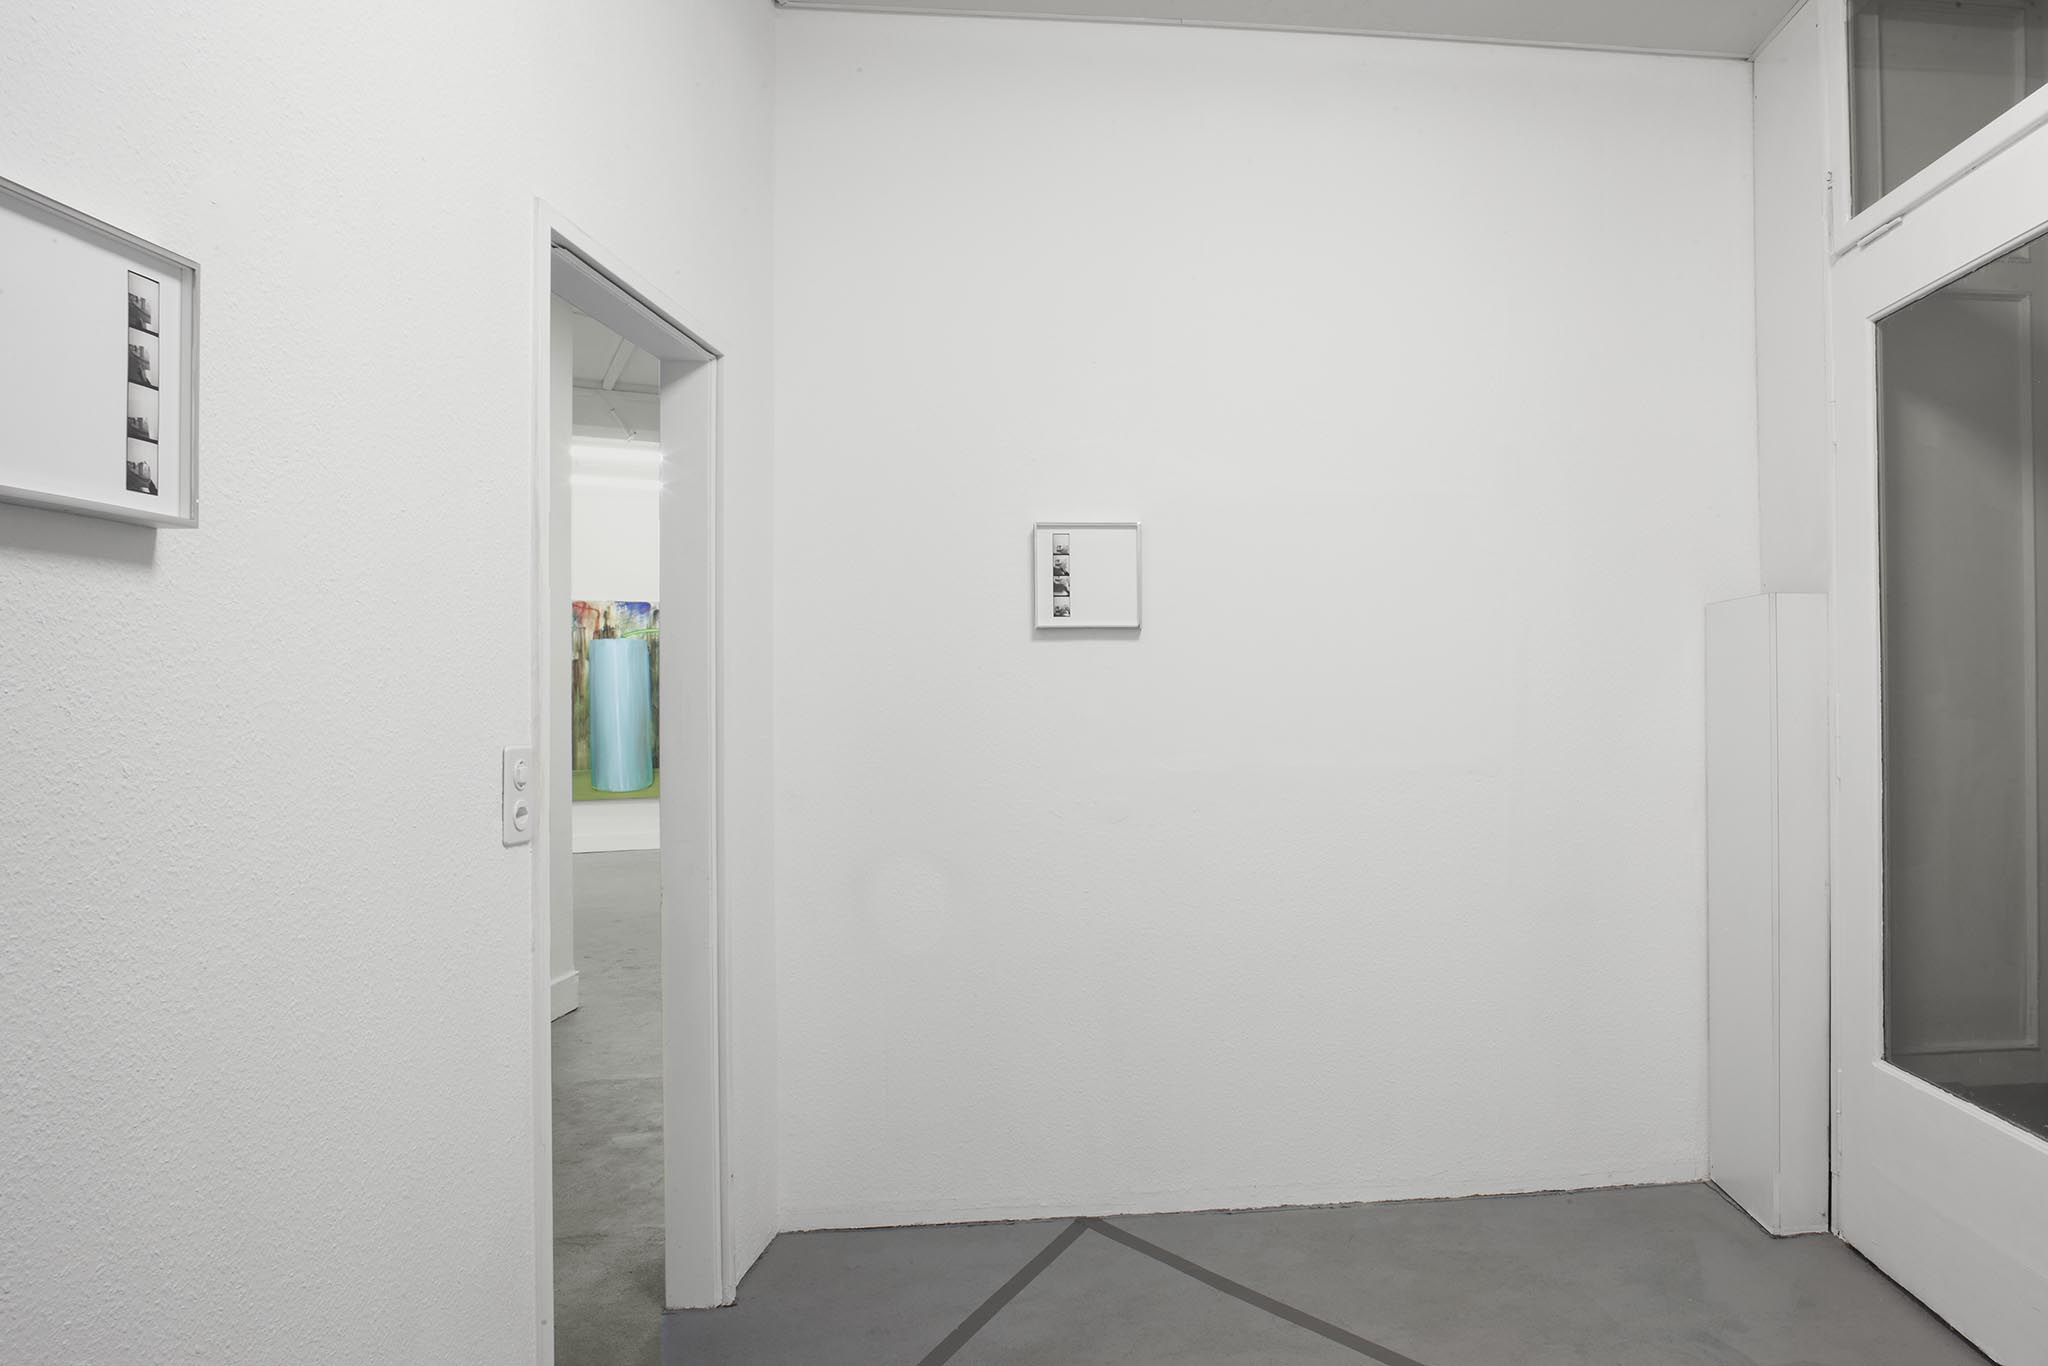 Vittorio Santoro,  Four Speakers' Corners, I , 2014, four photo booth stripes, each framed in a welded aluminum frame (25x25 cm), silver-grey adhesive tape on floor. Dimensions vary with installation Photo: Christoph Oeschger